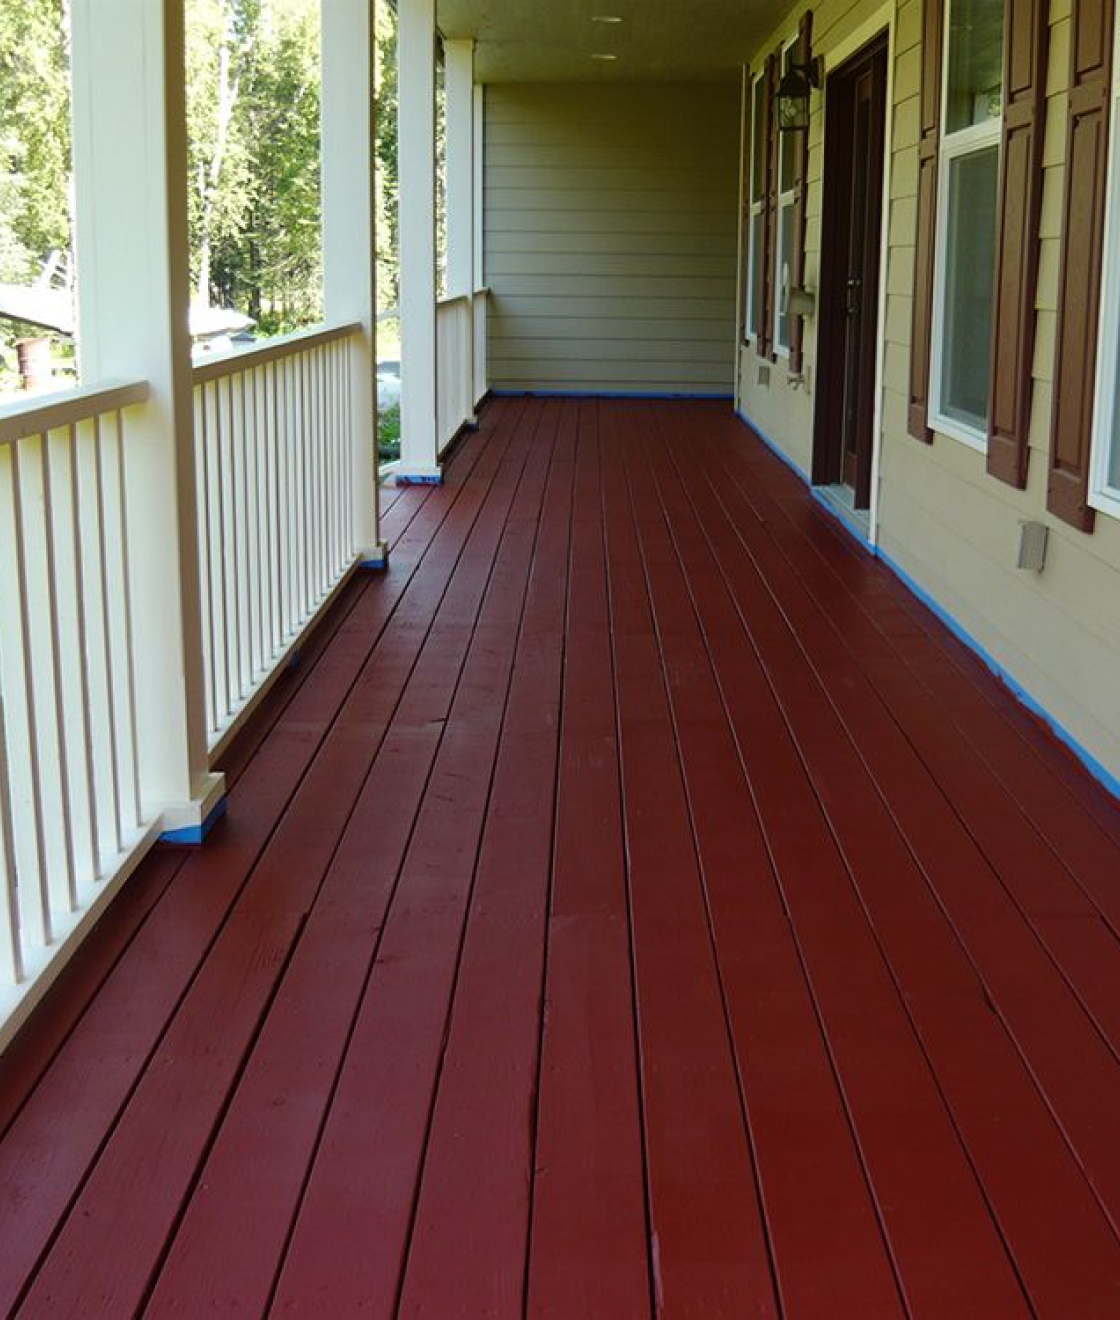 20 Wood Deck Paint Colors Ideas That Look Good in 20   theHouseMode